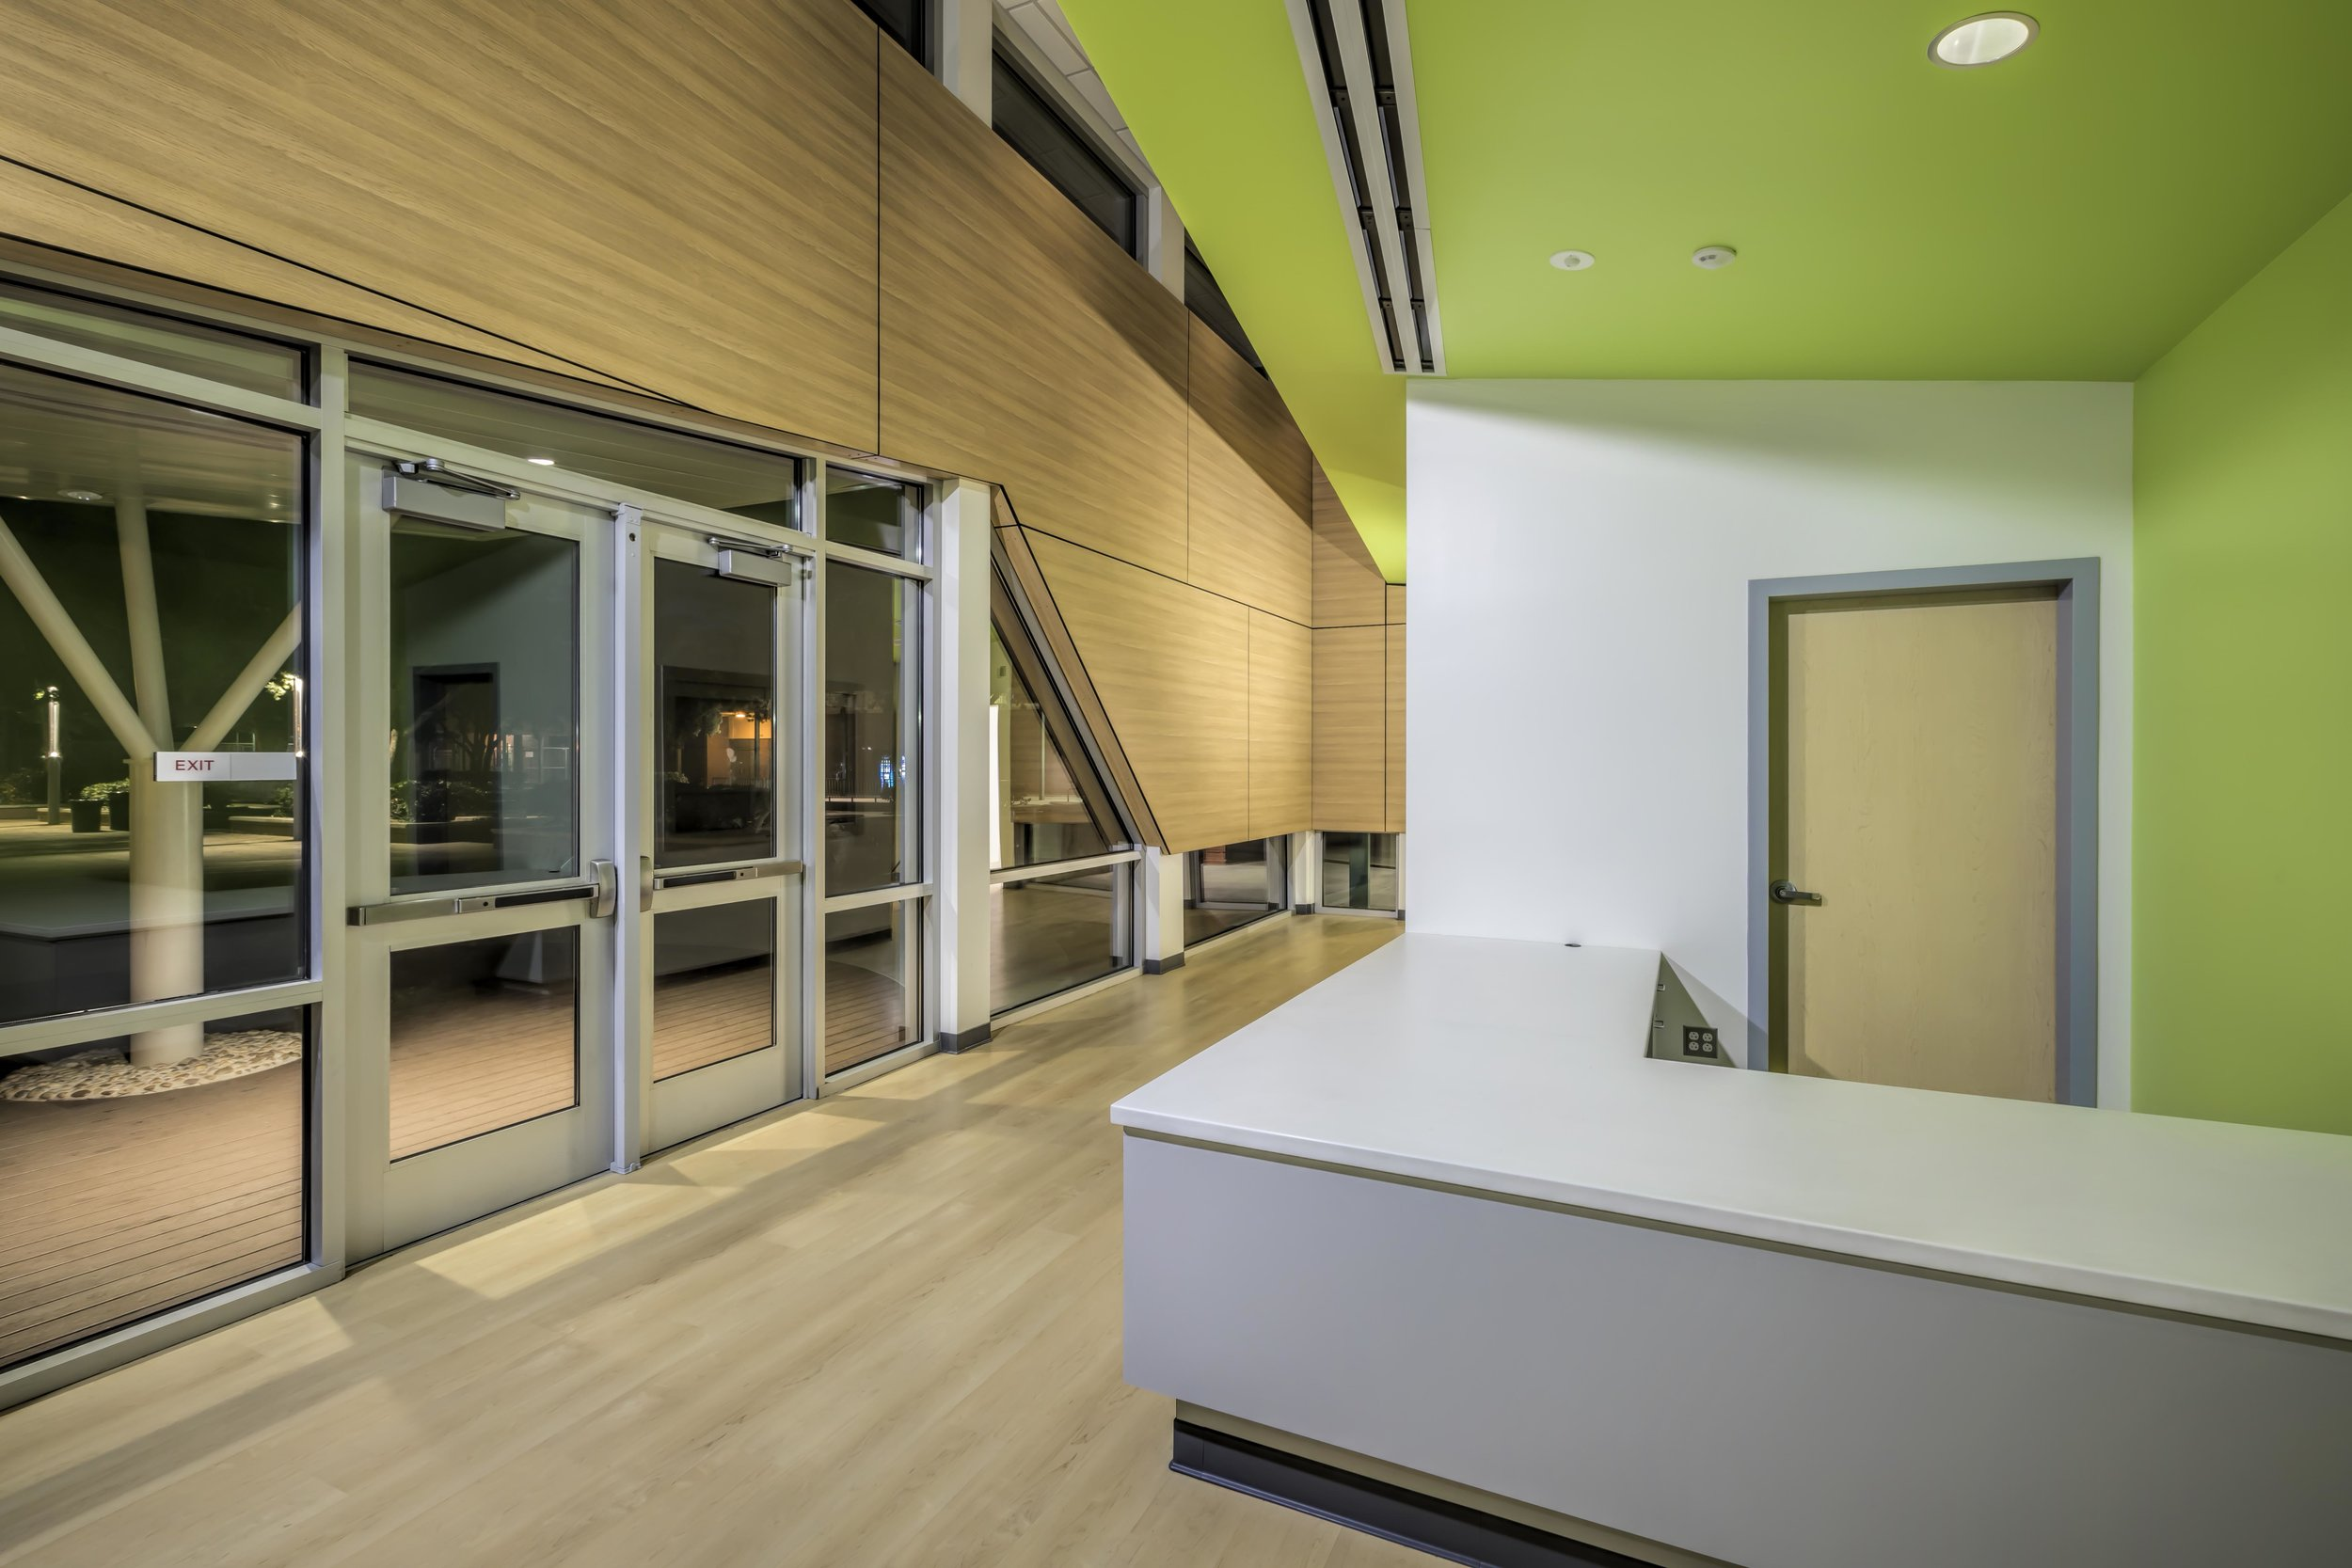 A high volume and natural light spill into the lobby space.